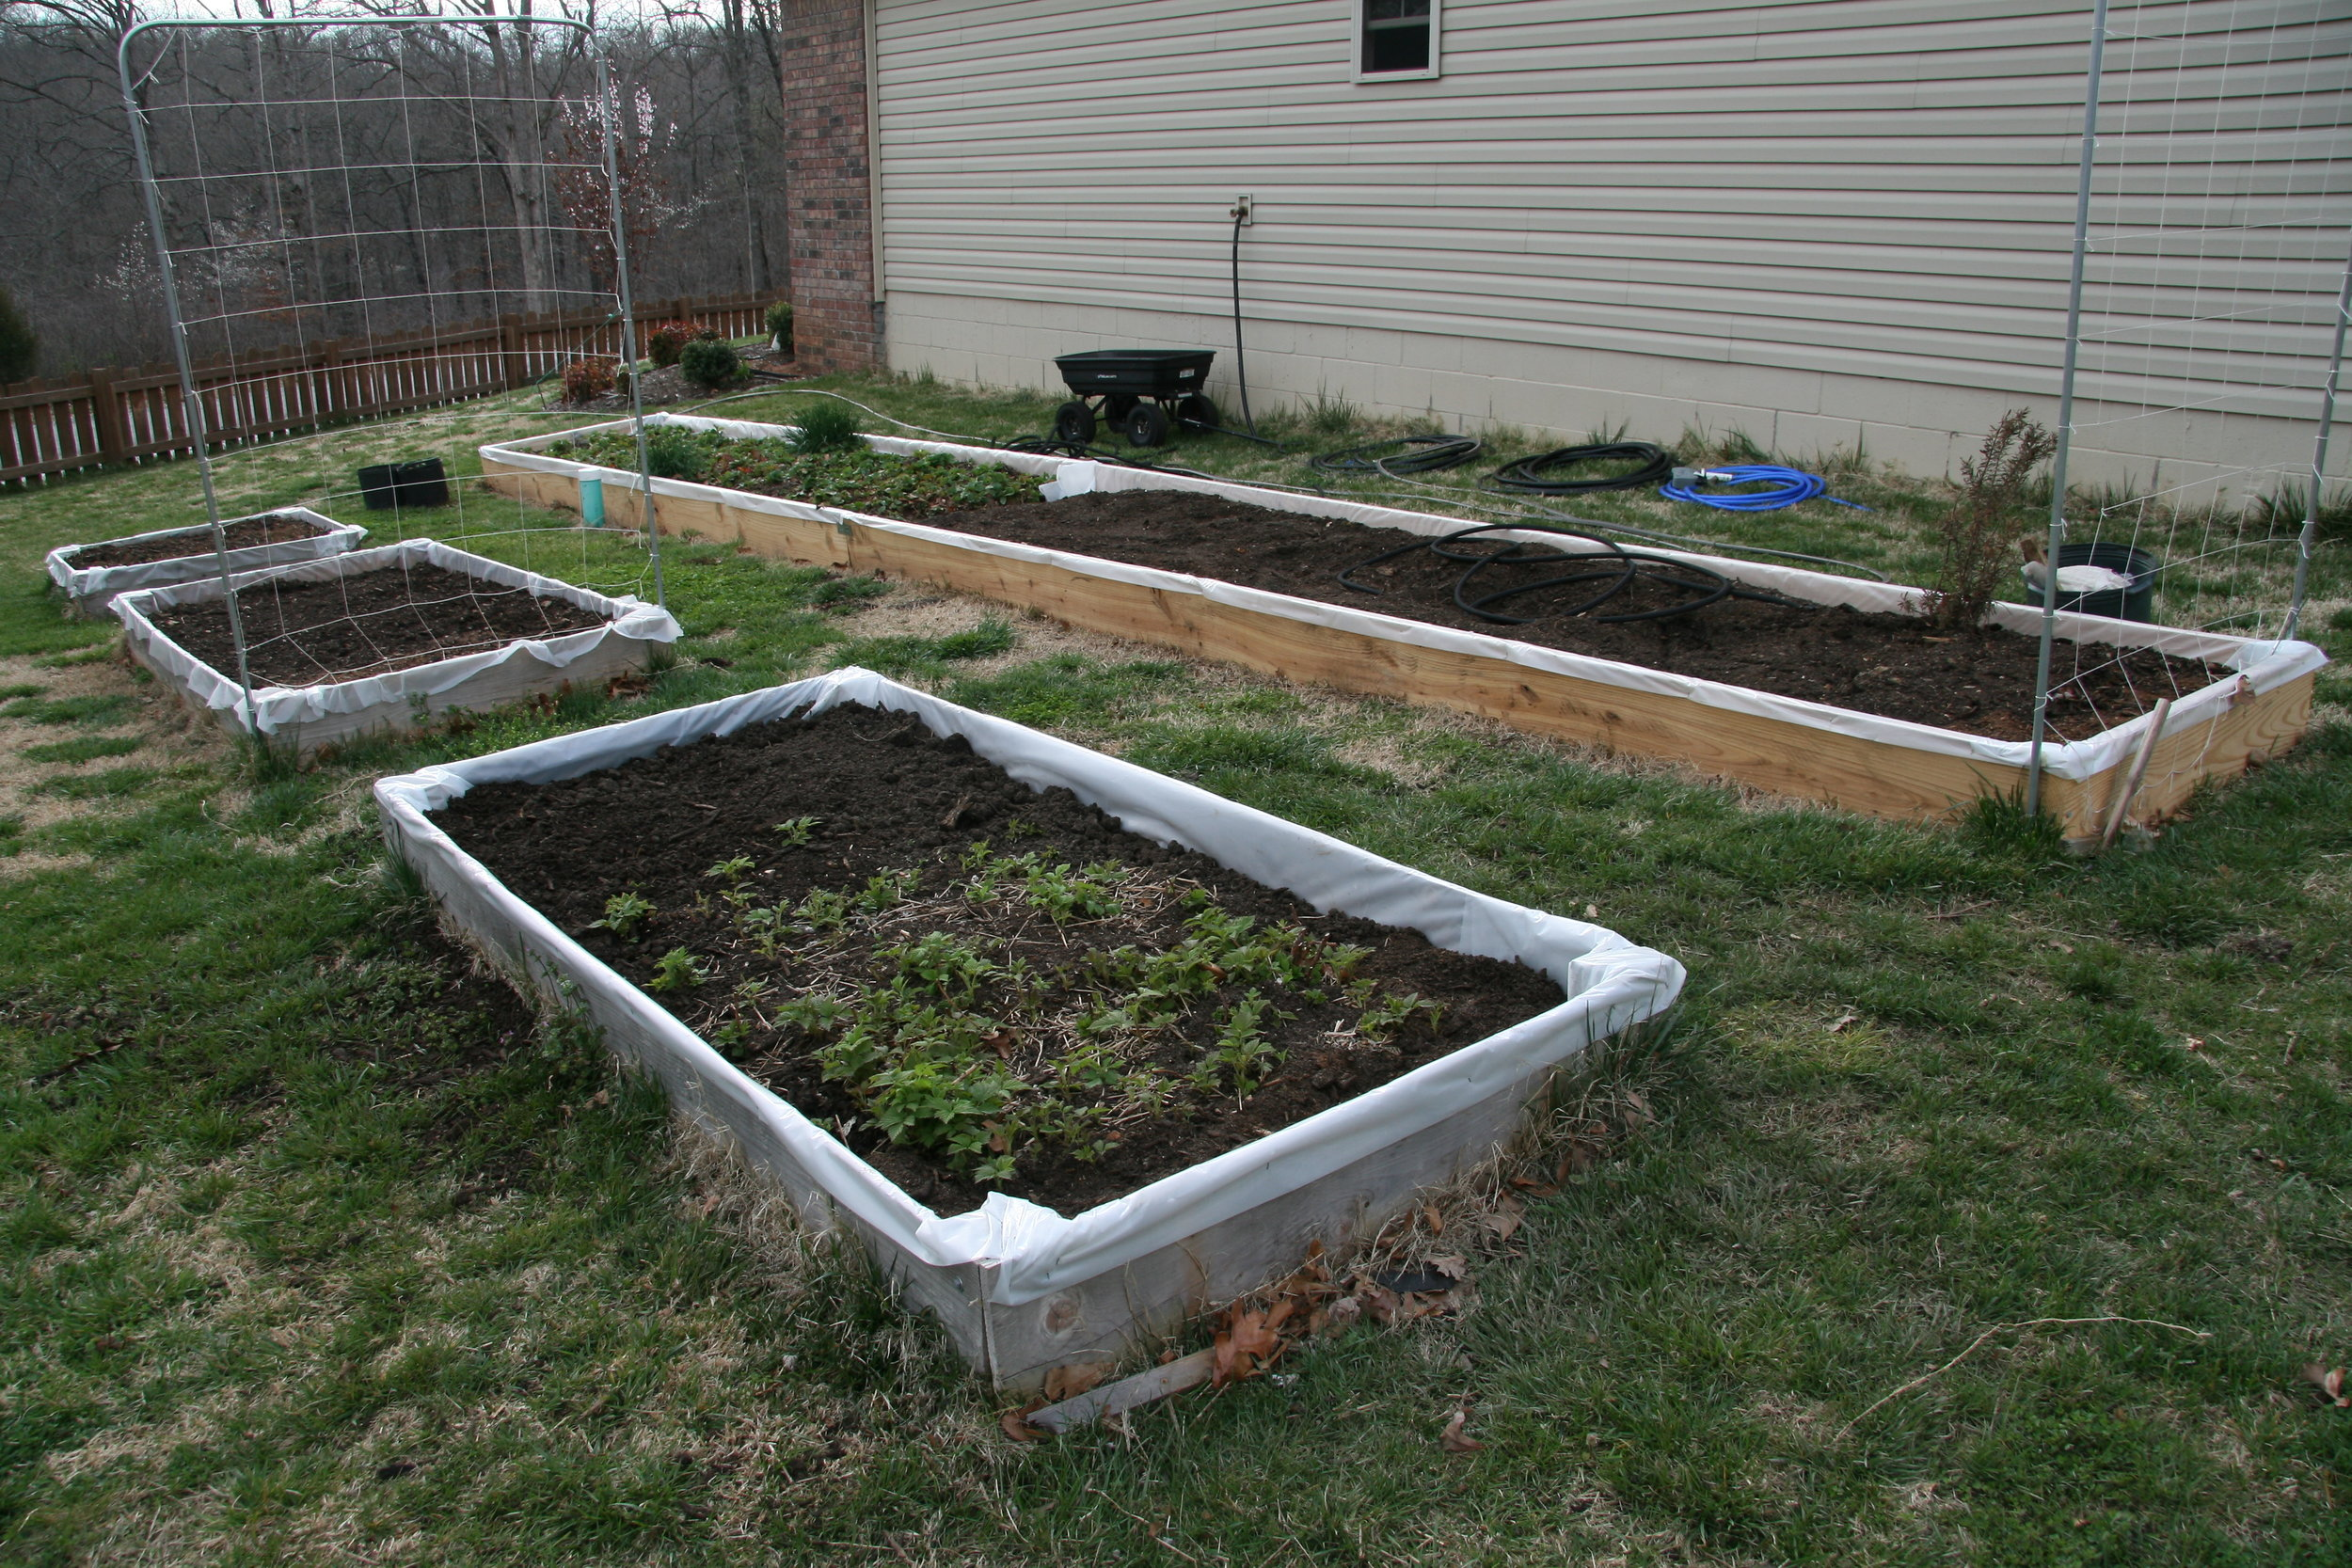 Our first garden in arkansas. 2009. By the way, plastic lined garden beds are the worst thing ever!